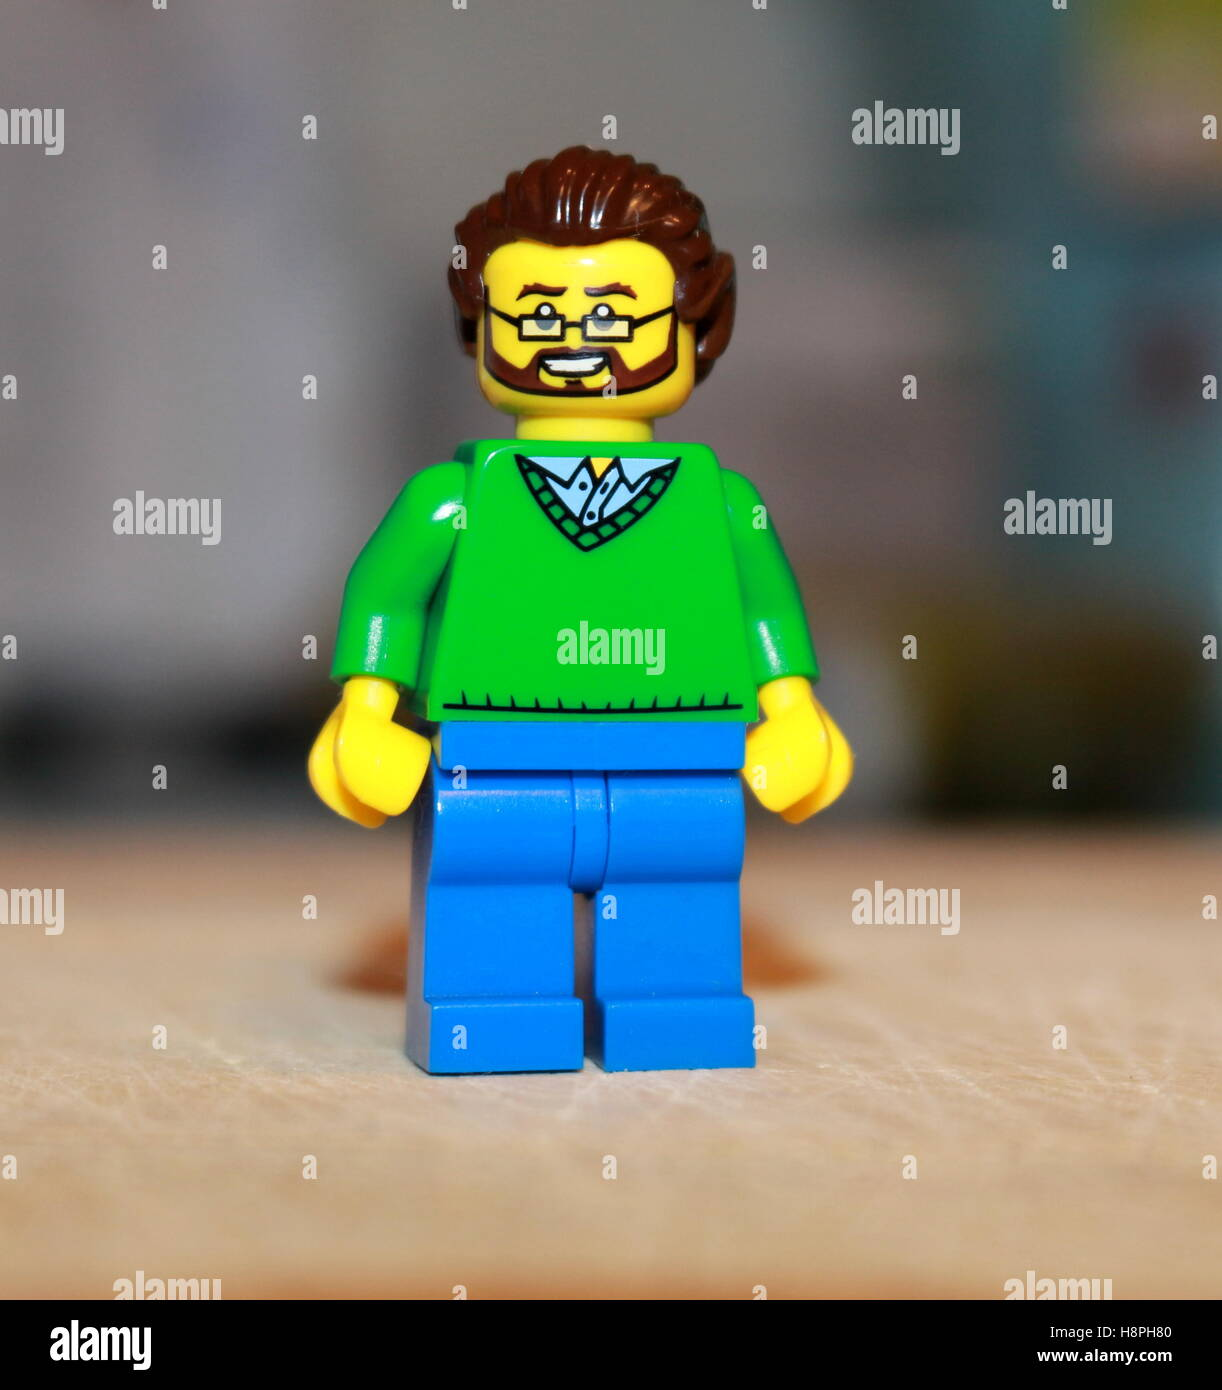 A Lego man with glasses and a beard - Stock Image